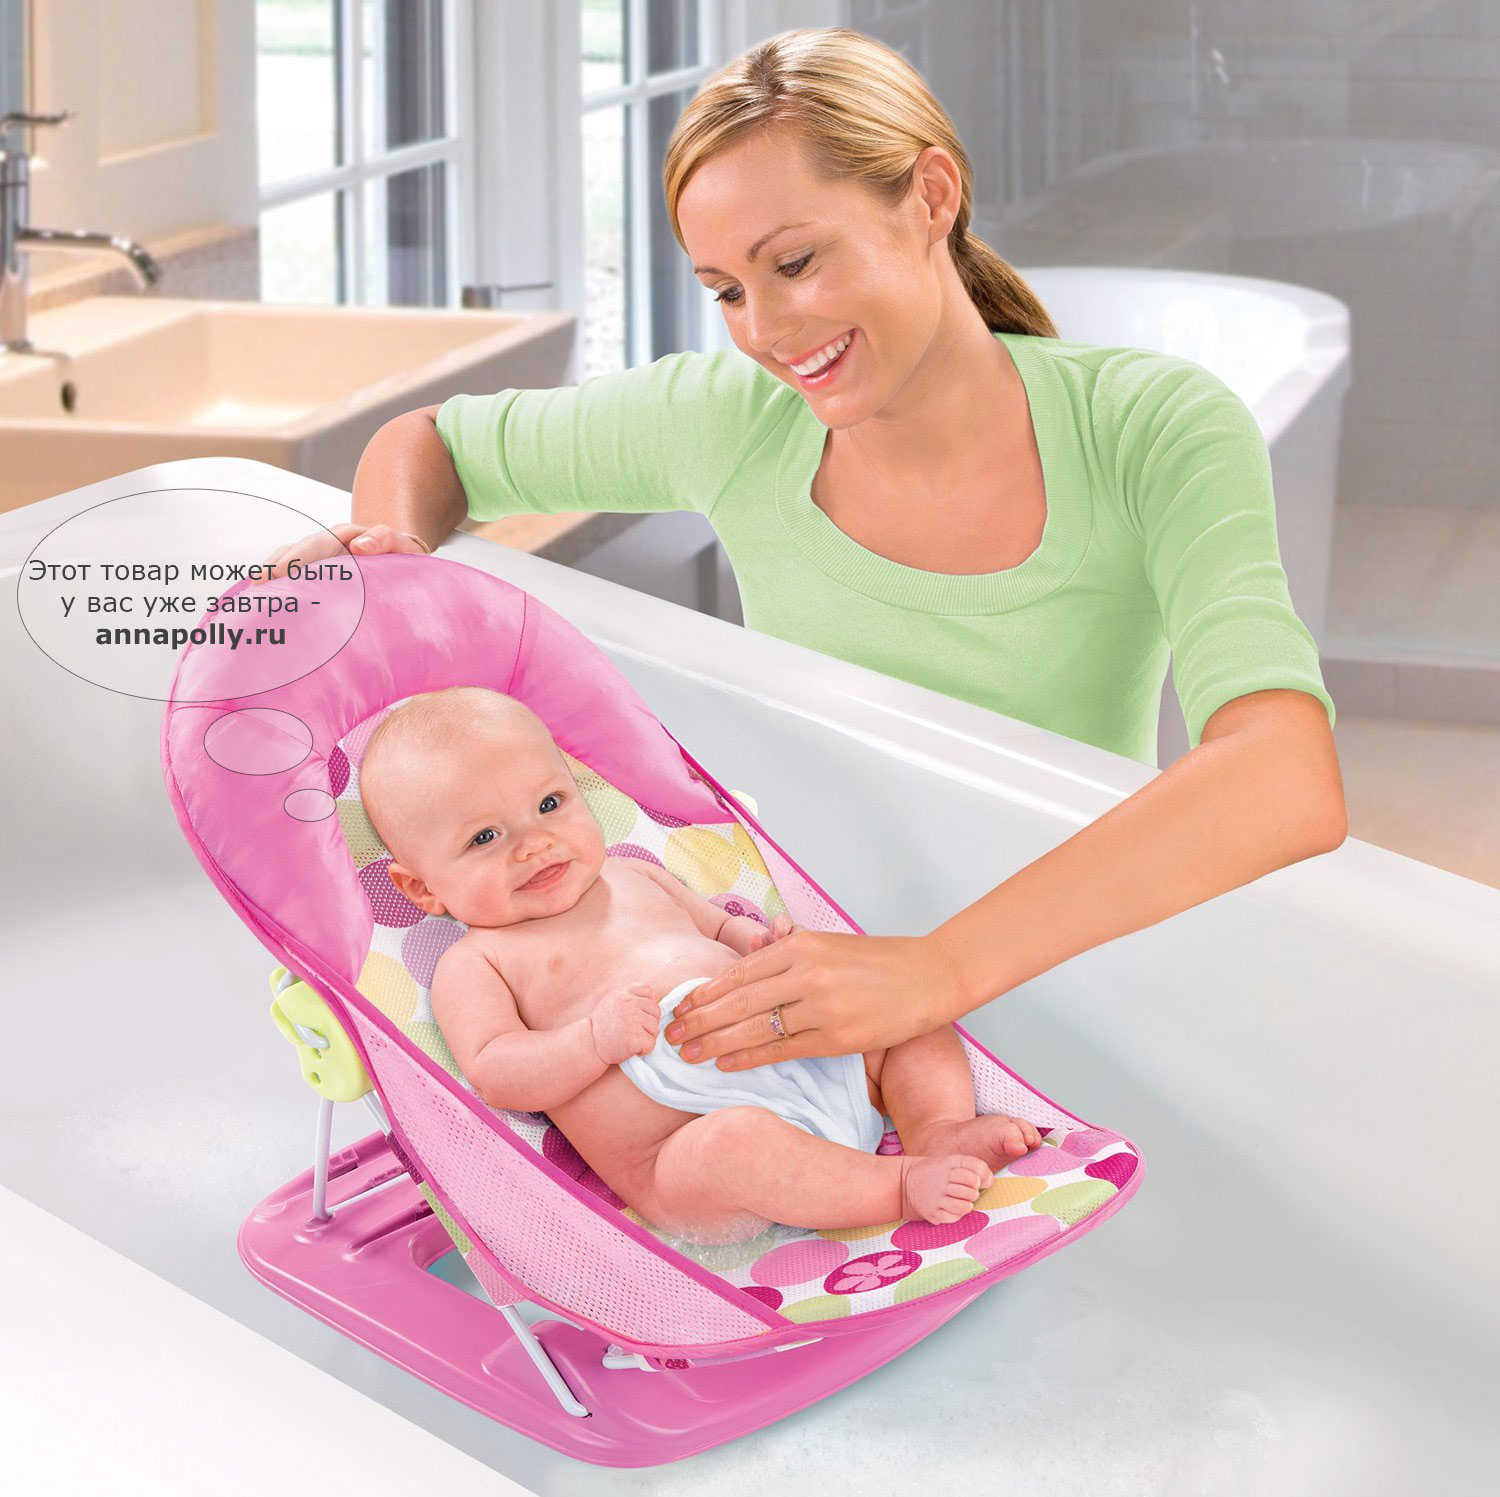 фото Лежак для купания в ванну Summer Infant Deluxe Baby Bather (Саммер Инфант Делюкс Бэби Баф)